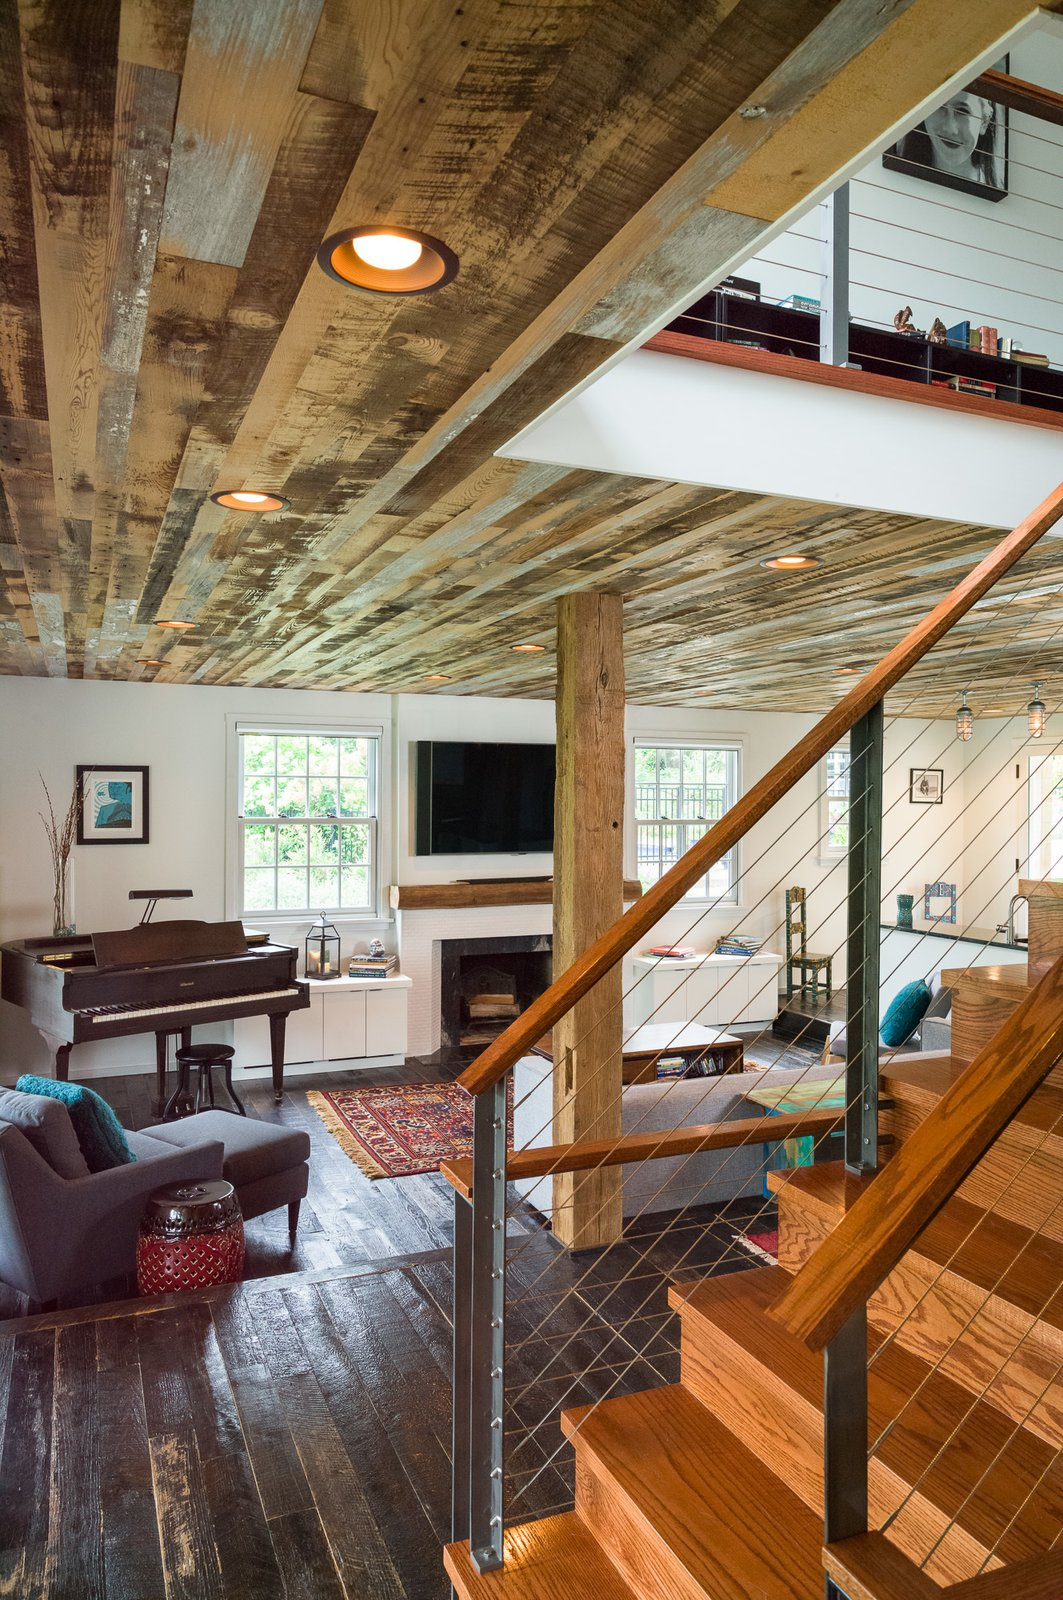 """The staircase works as a visual transition from the cozy first level to the more modern second floor. When standing downstairs, the staircase pulls away from the dark anchoring floorboards with angled steel beams, stainless steel cables, and wood caps. """"It's thin and light so that it wouldn't impede connection to the first floor,"""" says Michael. """"It's meant to be pretty modern, but the wood cap softens the look a little, and makes the experience of touching the railing softer.""""  Photo 4 of 8 in A Loving Renovation Updates a Rustic Family Home with Reclaimed Materials"""